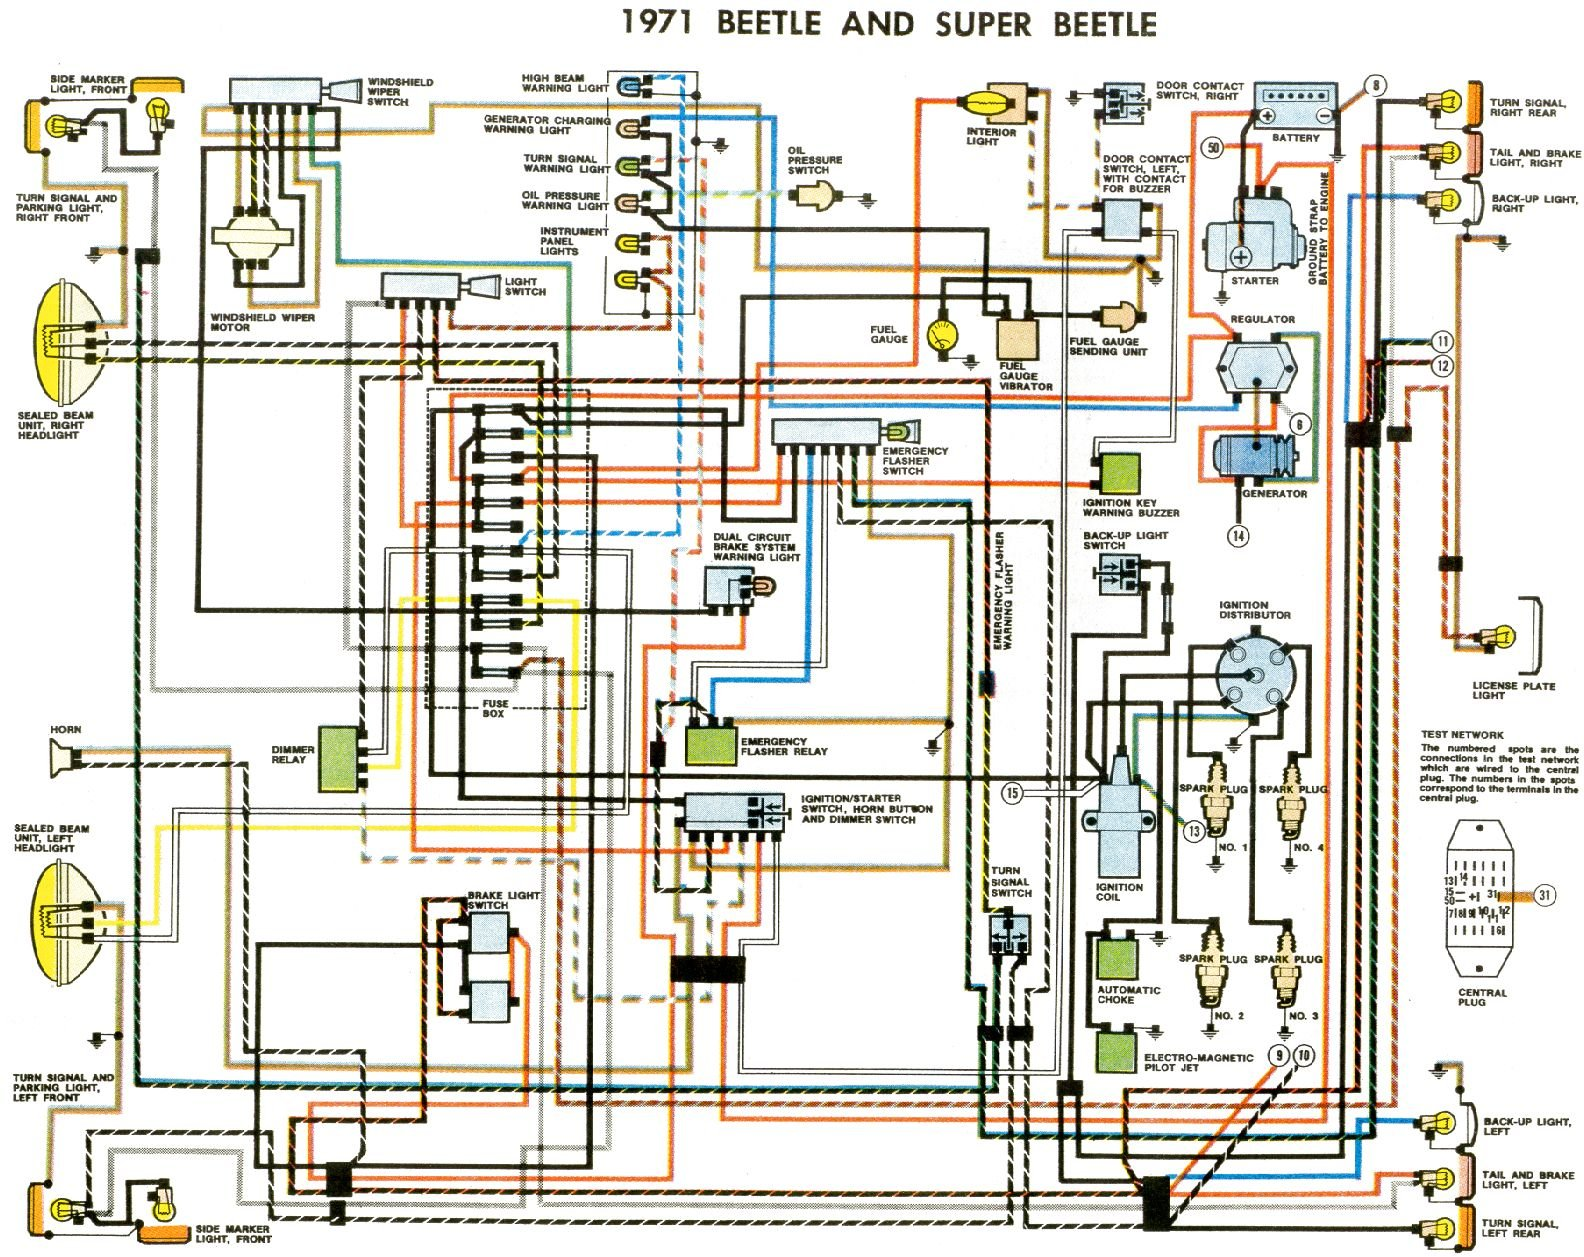 bug_71 1971 beetle wiring diagram (usa) thegoldenbug com 69 vw wiring diagram at readyjetset.co